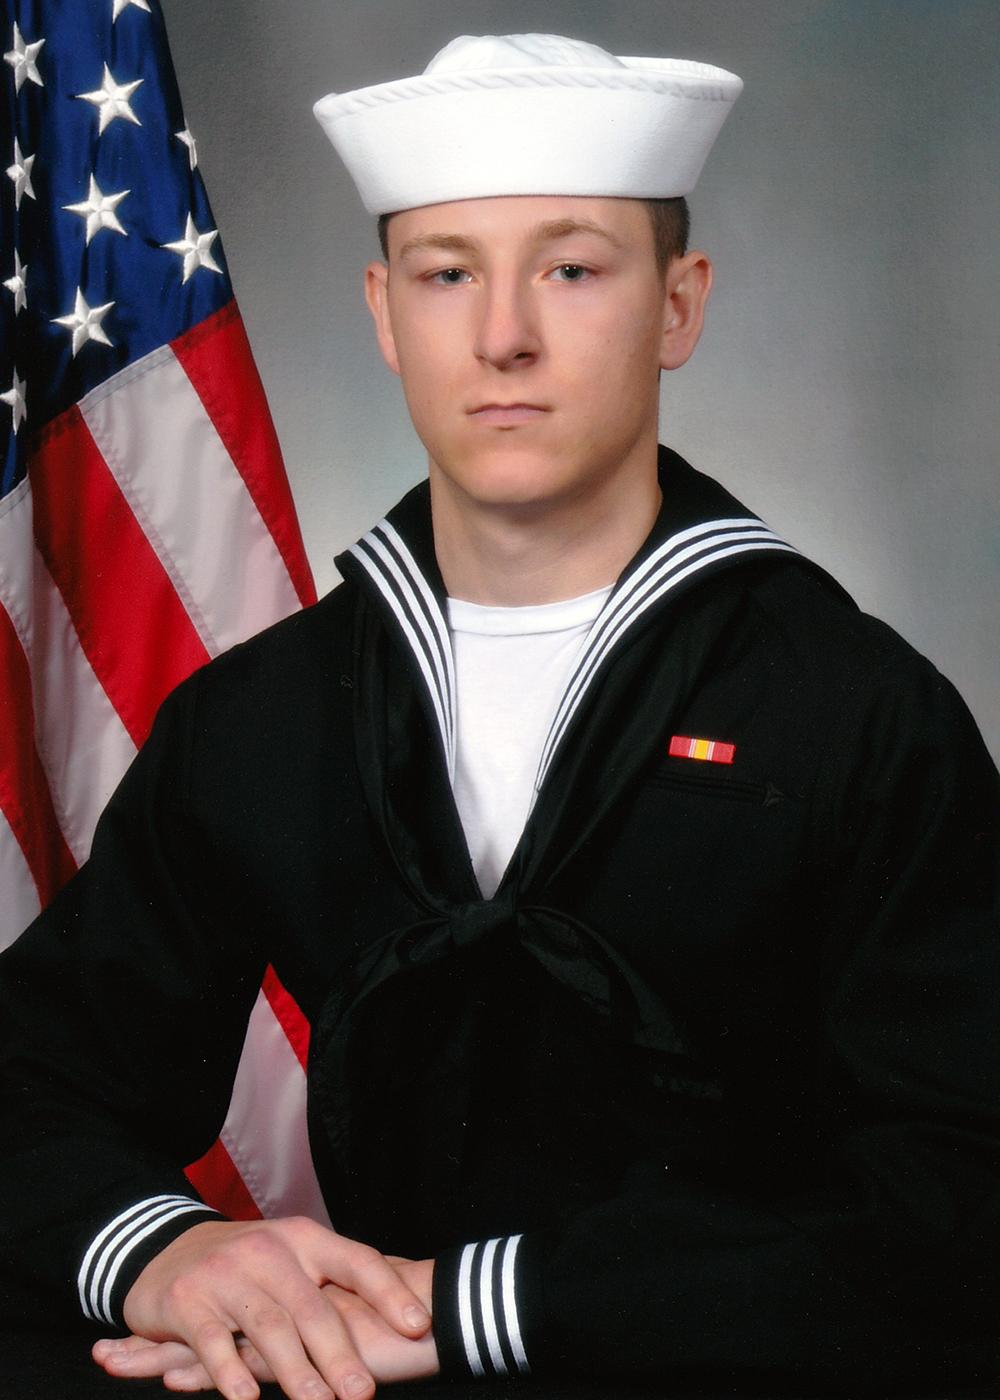 U.S. Navy file photo of Electronics Technician 3rd Class Kenneth Aaron Smith, 22, from Cherry Hill, New Jersey, who was stationed aboard USS John S. McCain (DDG 56) when it collided with the Liberian-flagged merchant vessel Alnic MC, Aug. 21. Ten Sailors subsequently went missing. Smith?s remains were recovered by U.S. Navy and Marine Corps divers who will continue search and recovery efforts inside flooded compartments in the ship for the missing Sailors.  (U.S. Navy photo/Released)